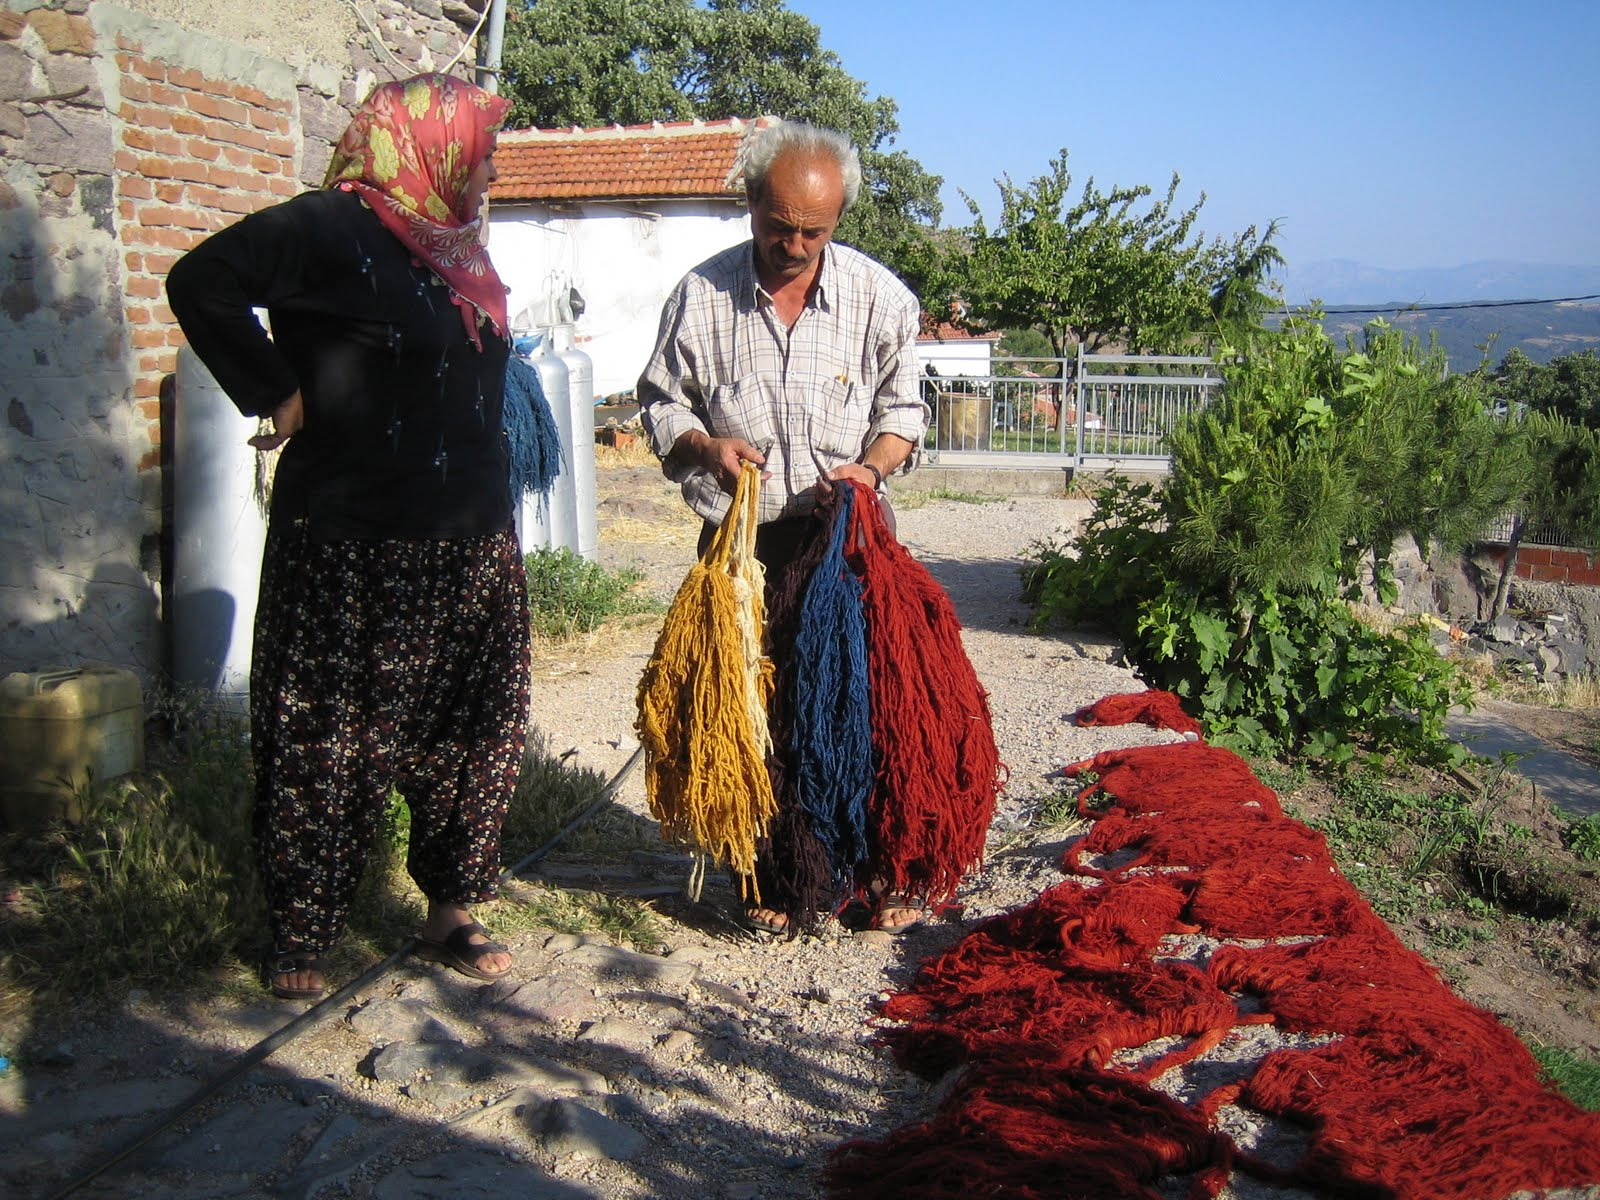 Natural-Dyed yarns are dried, Örselli village Manisa, Western Turkey, 2000s